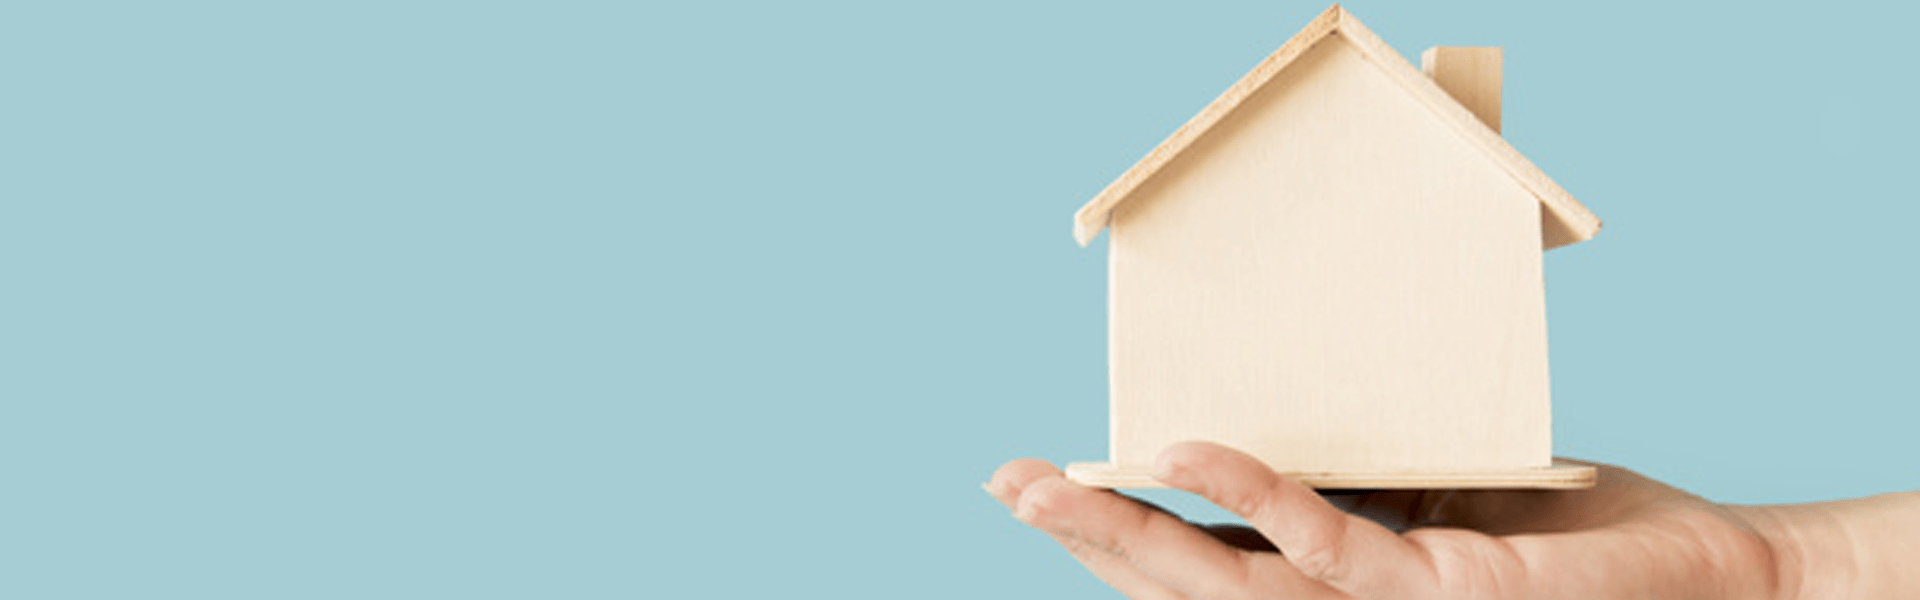 What Is A Freehold Property?